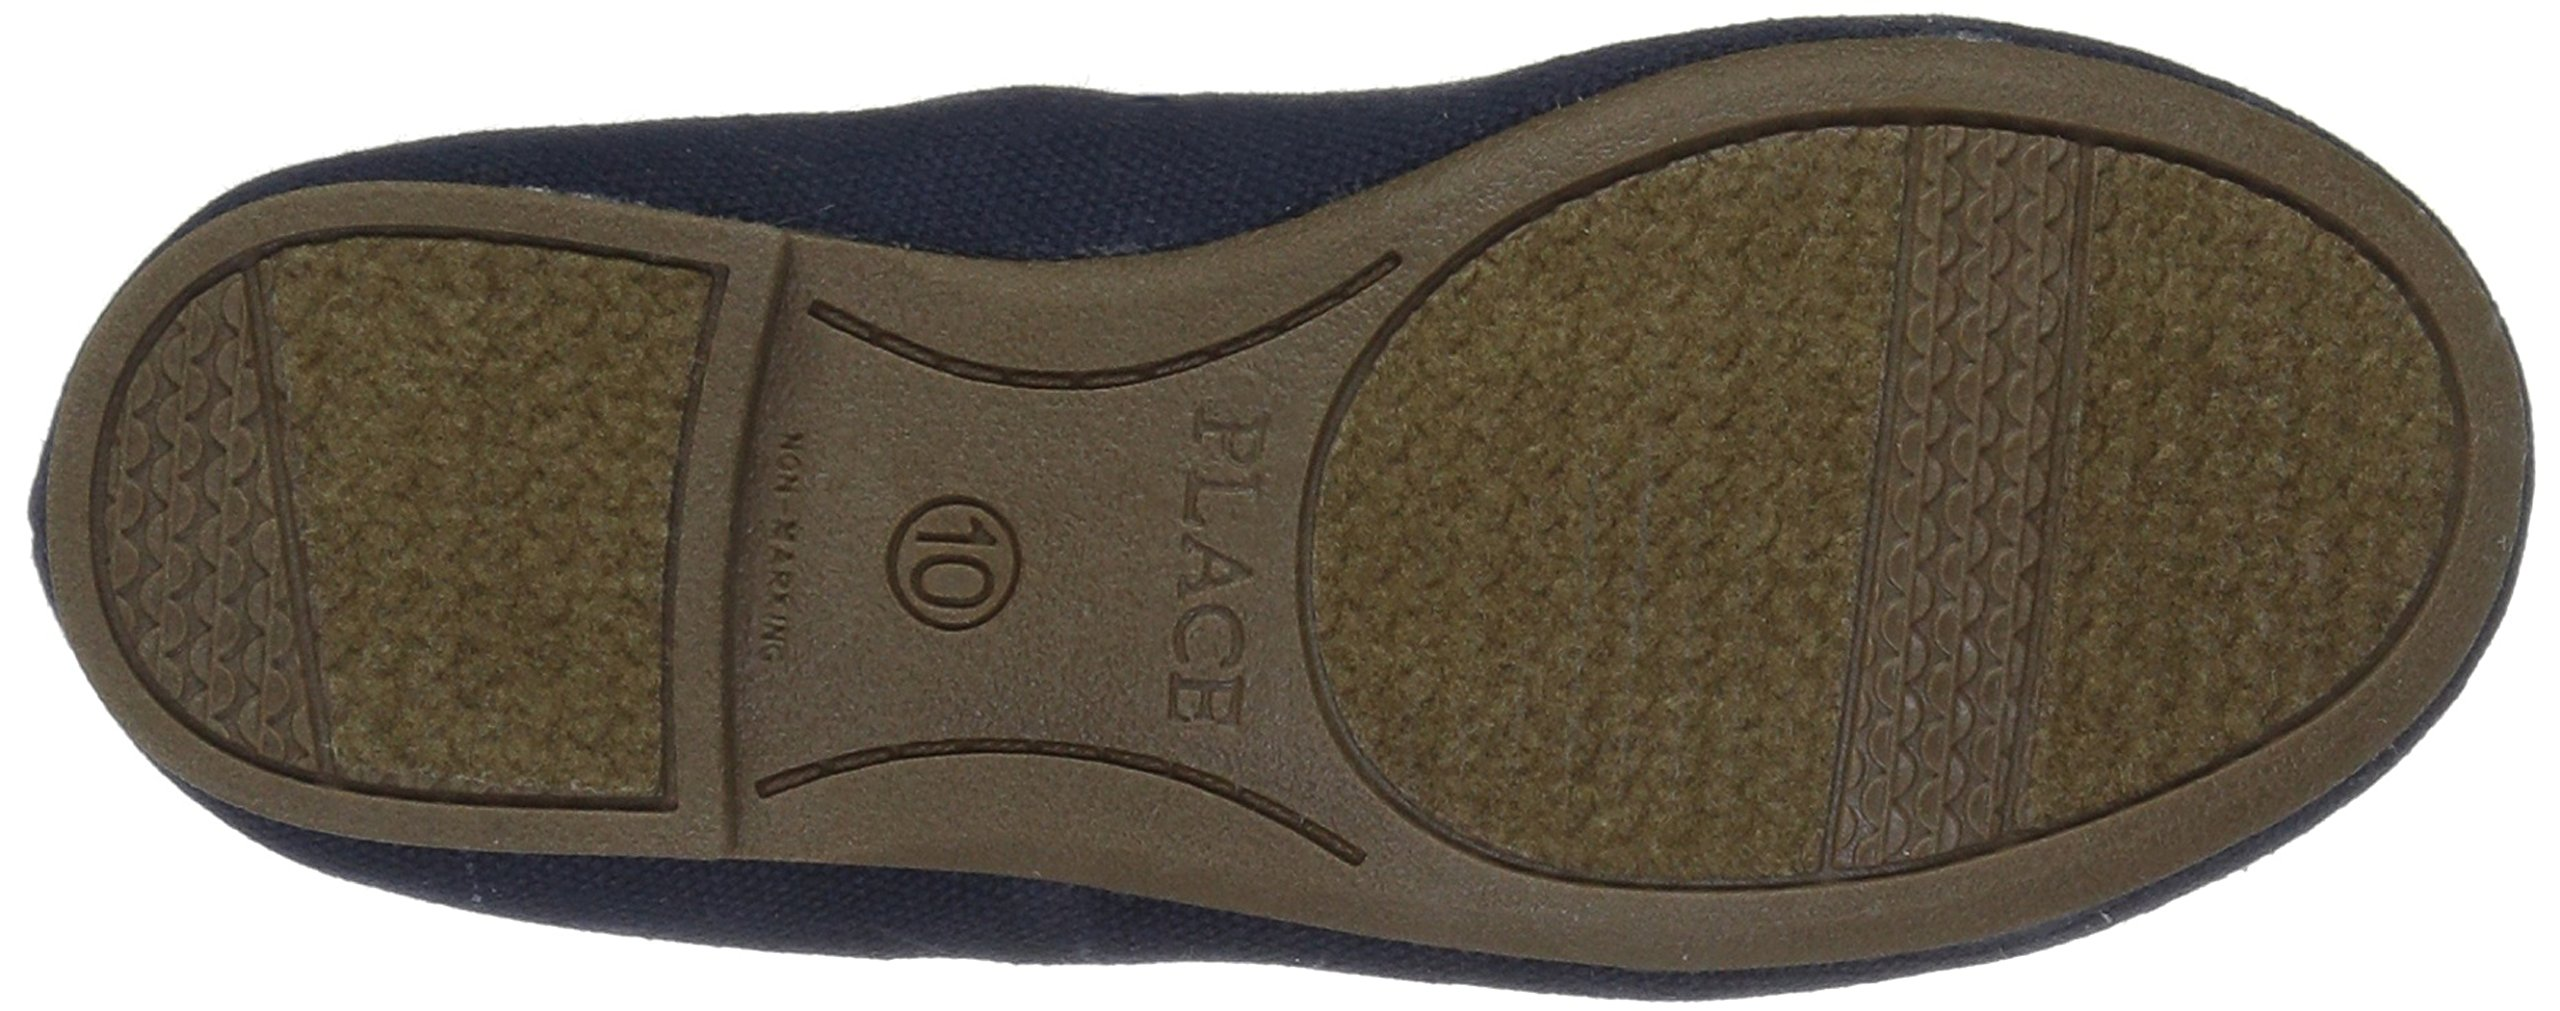 The Children's Place Girls' E TG Uni Kayla Uniform Dress Shoe, Navy, TDDLR 5 Toddler US Toddler by The Children's Place (Image #3)